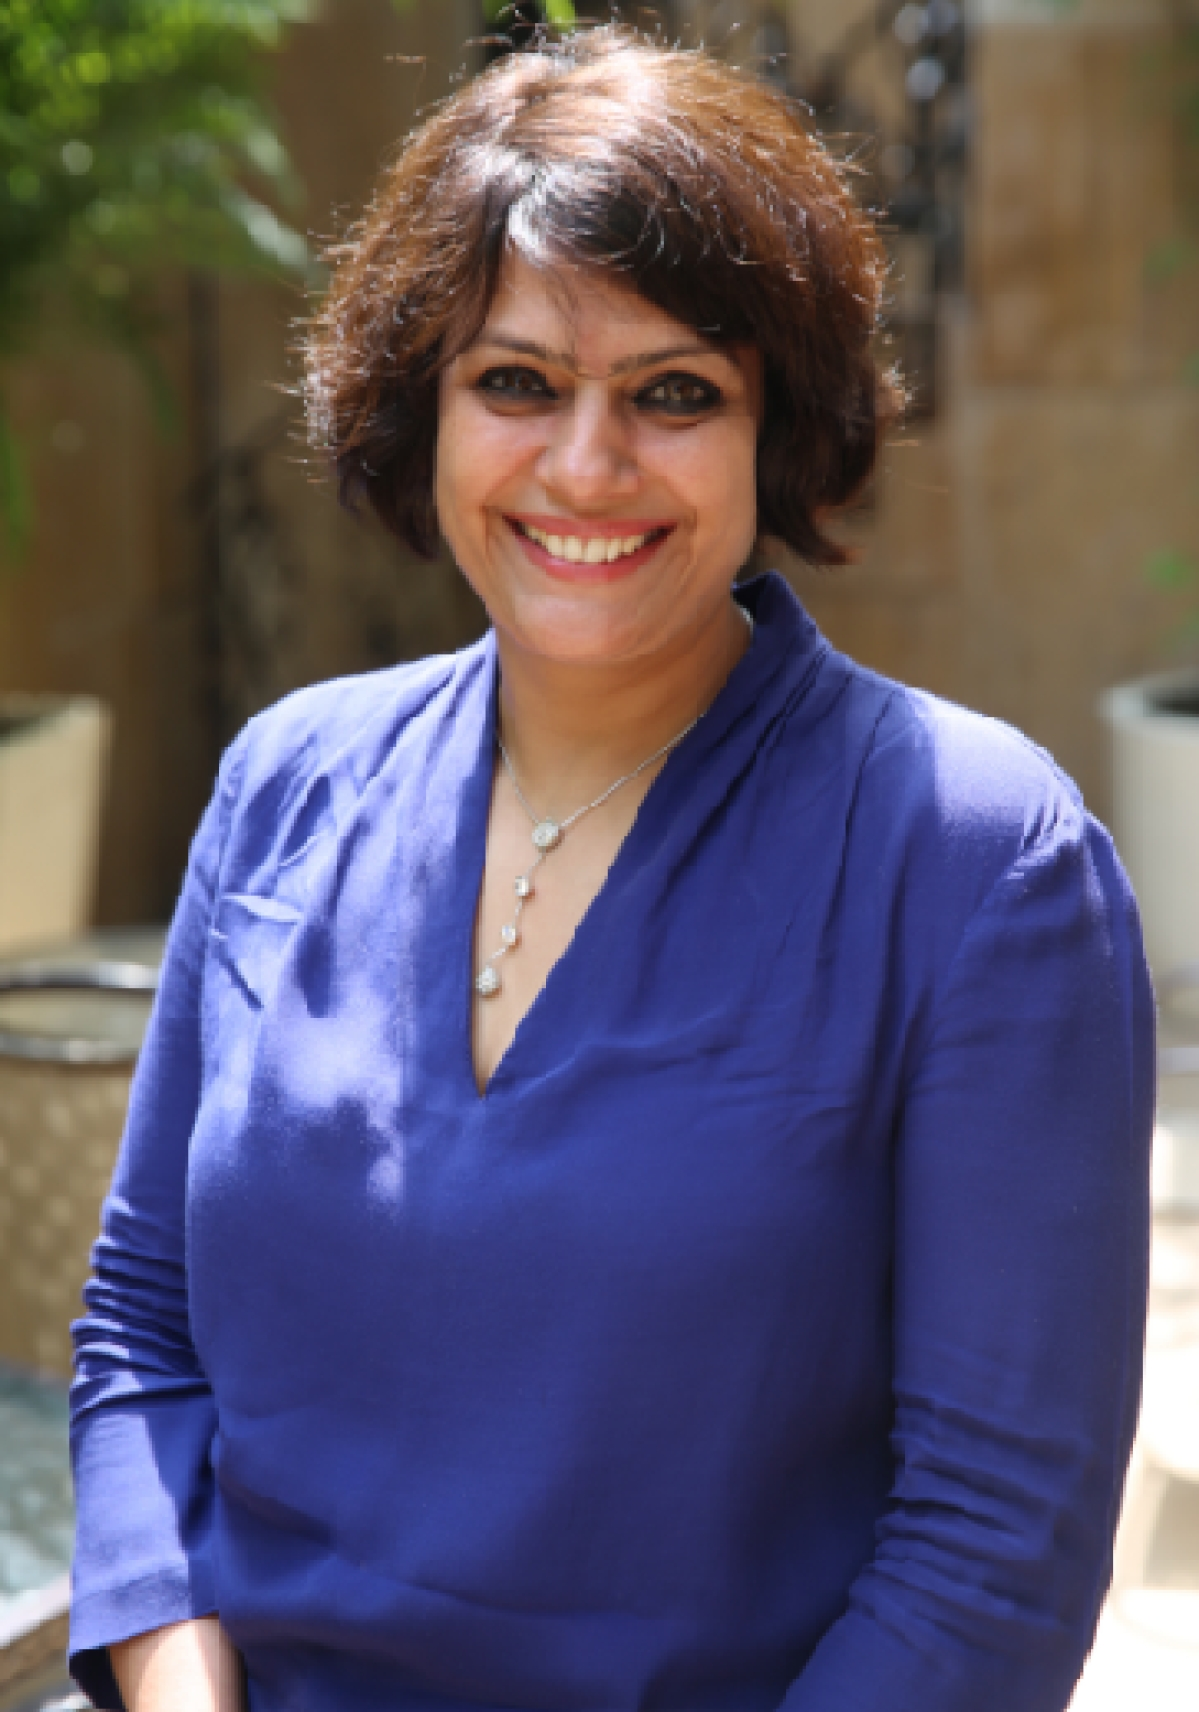 A competent woman is unlikely to face discrimination in today's age – AZB Partner, India Inc's Rising Women Leader, Vinati Kastia